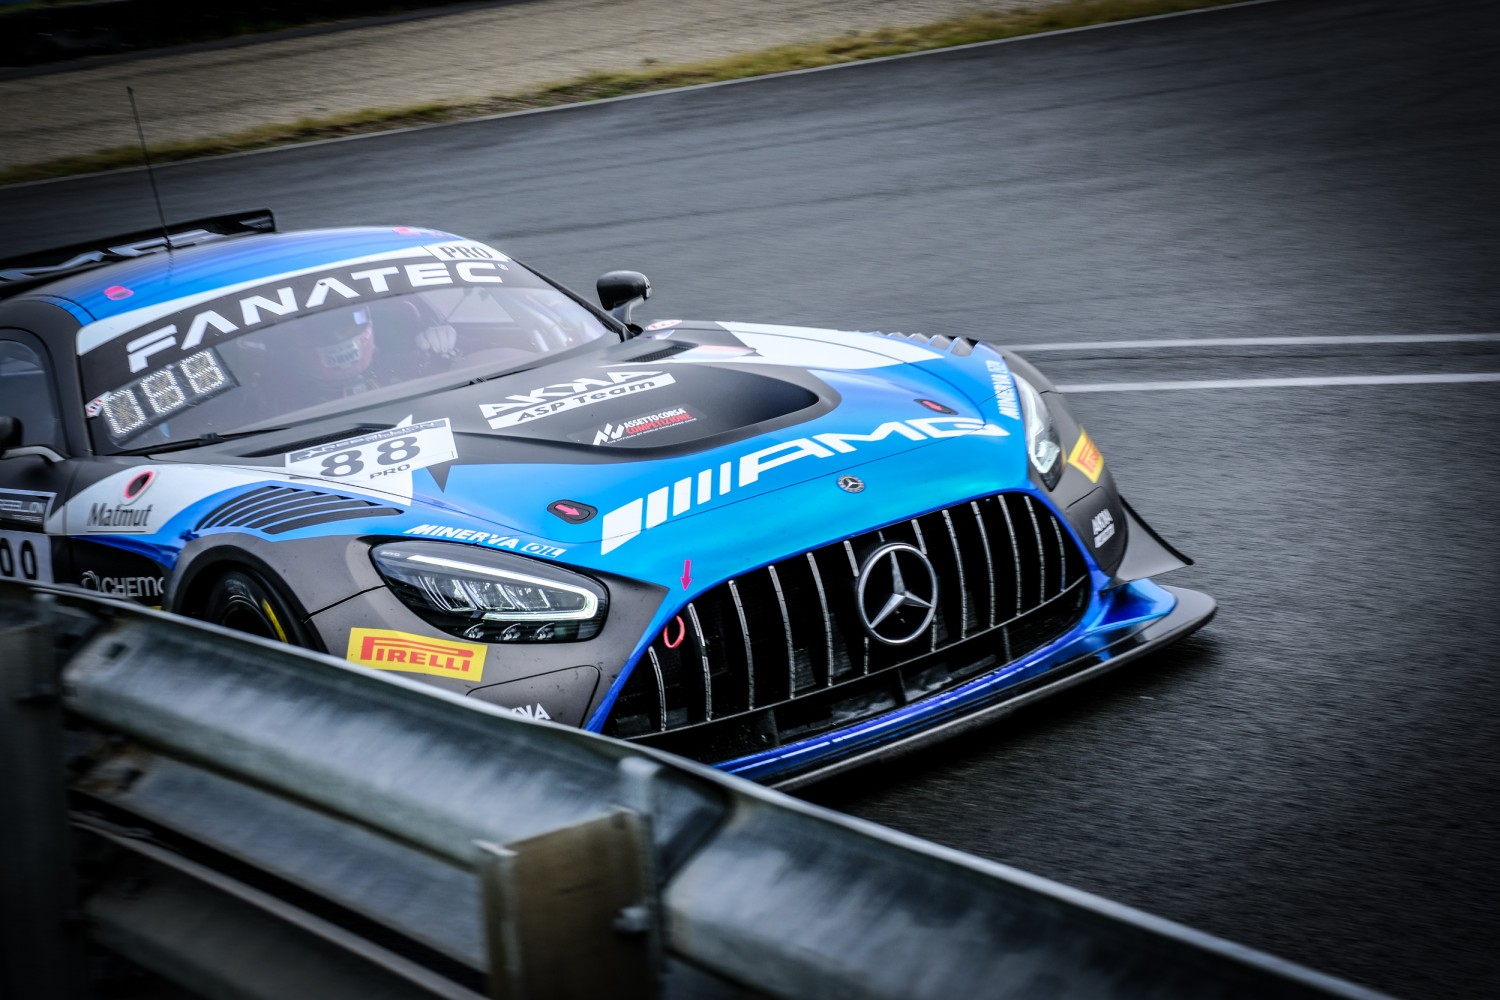 Maricello puts AKKA ASP Mercedes-AMG on pole for second Zandvoort contest